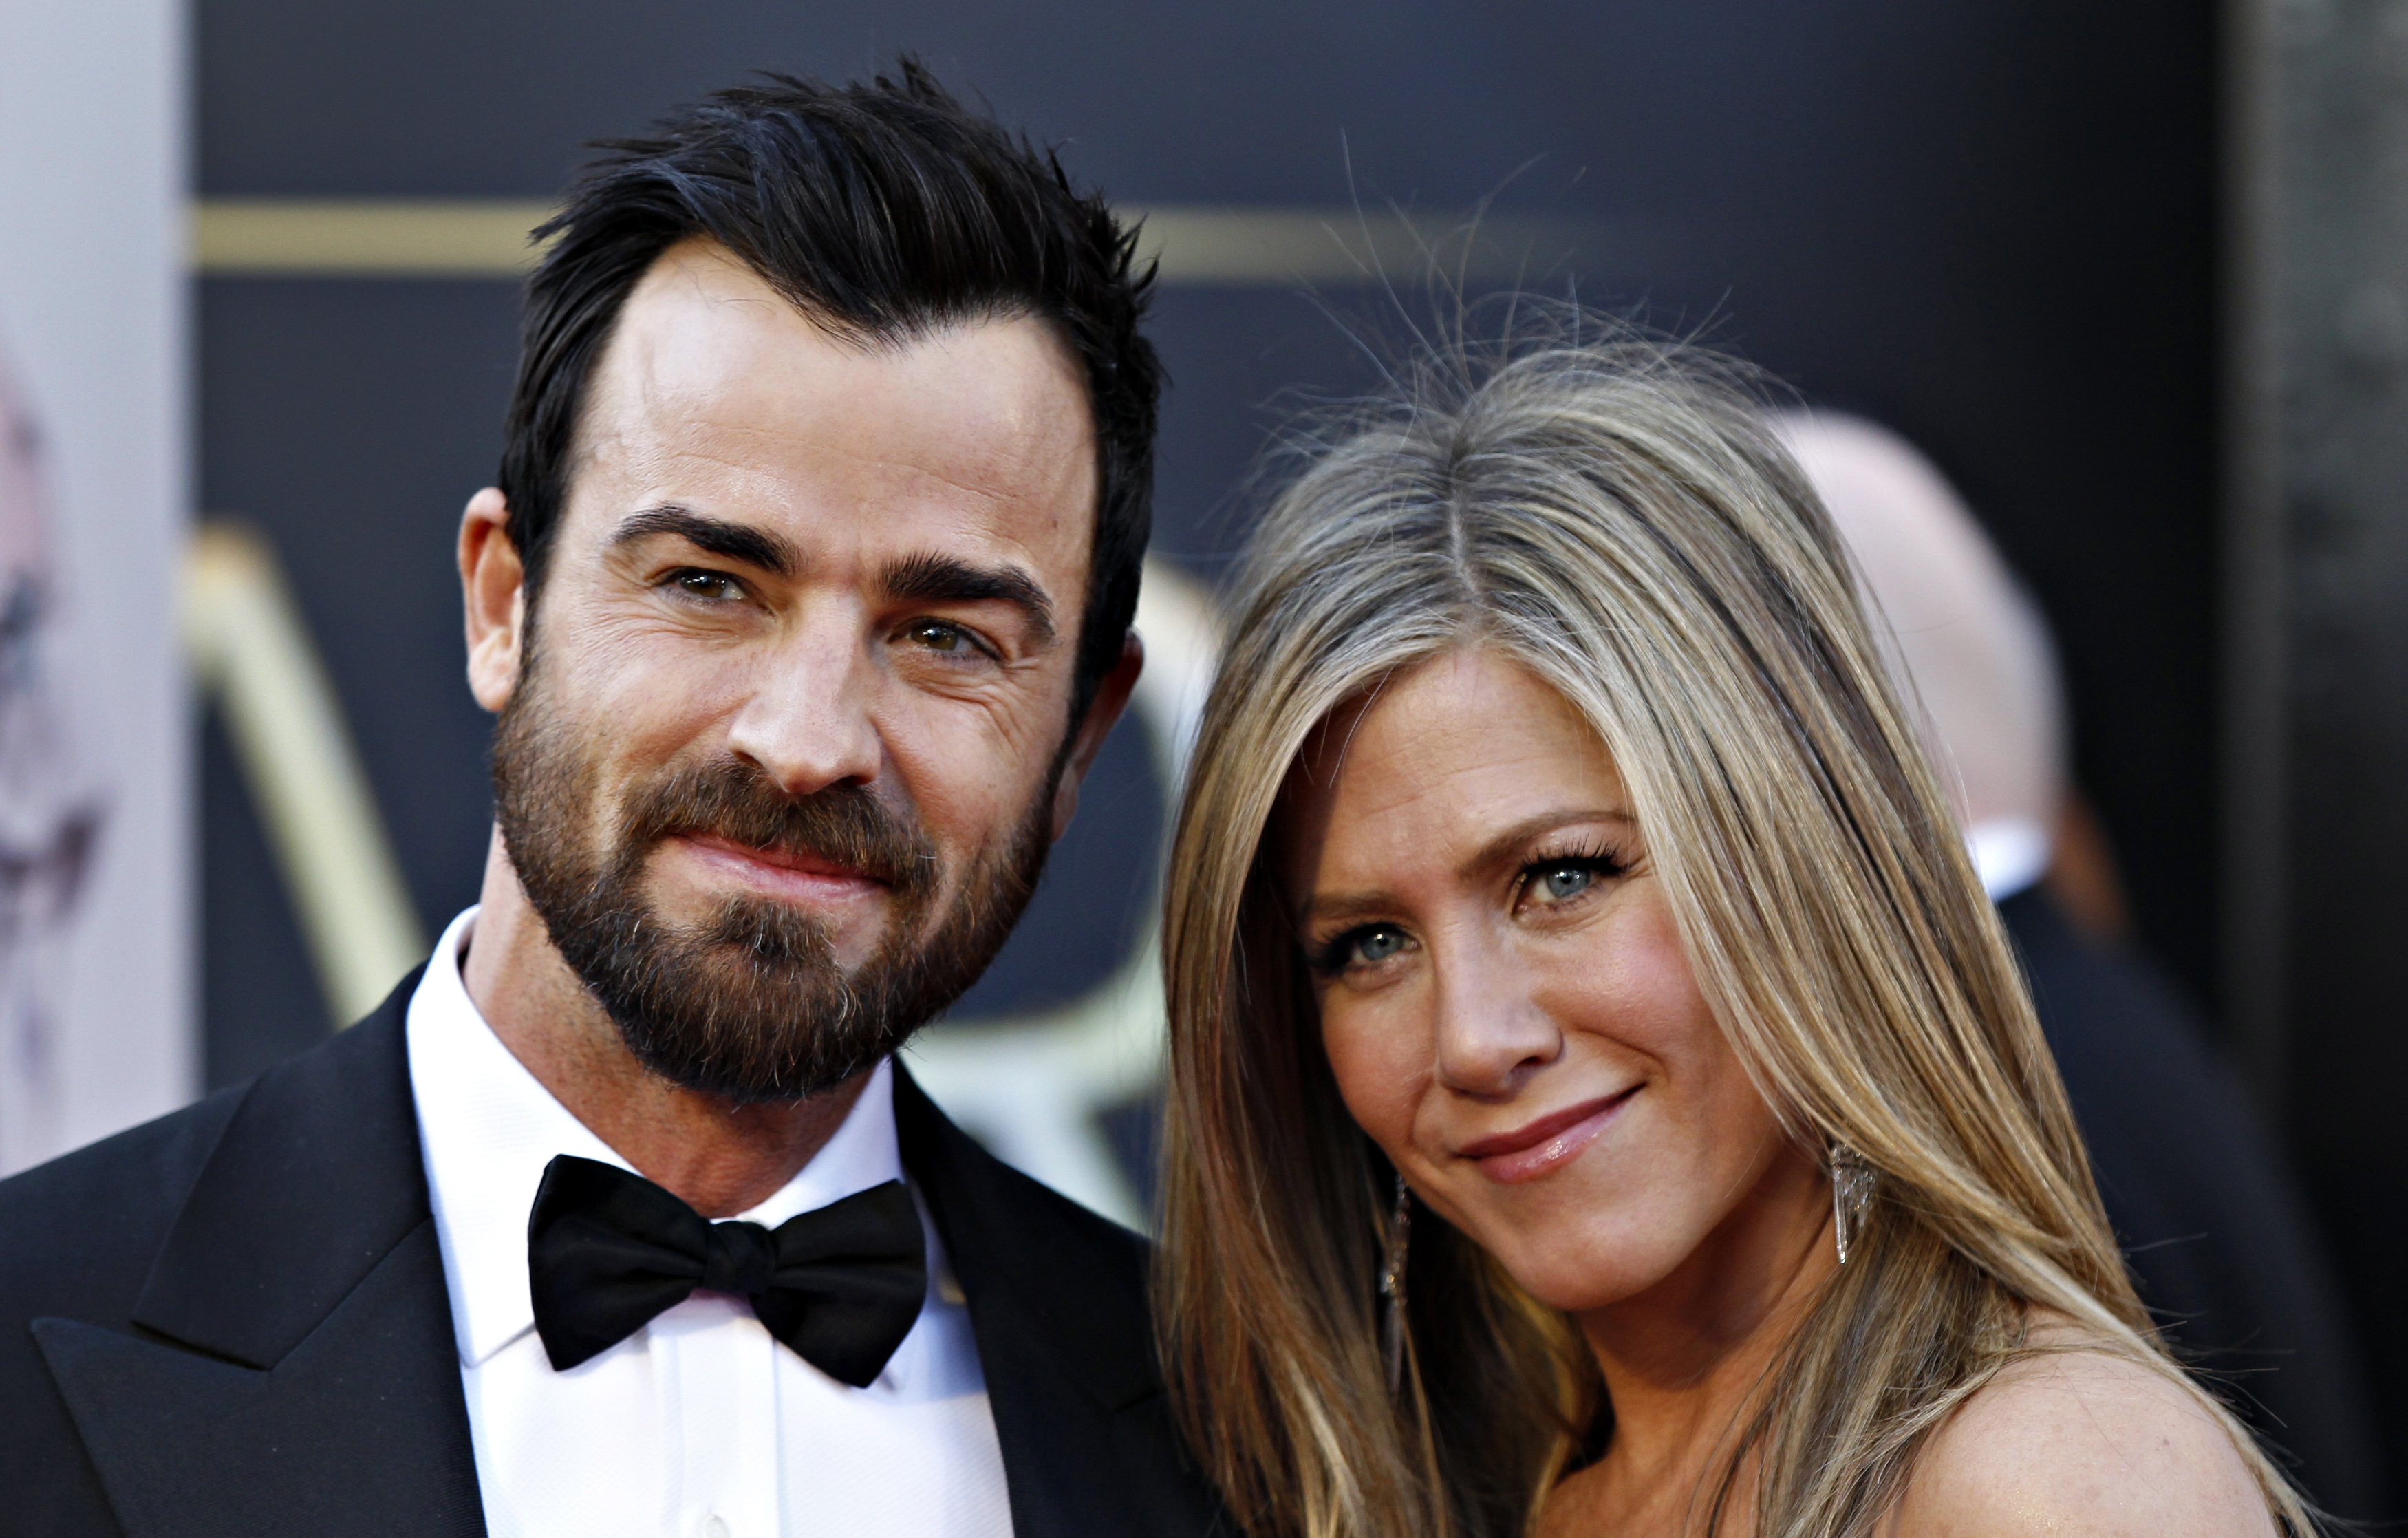 Is Jennifer Aniston Pregnant With Justin Theroux's Baby